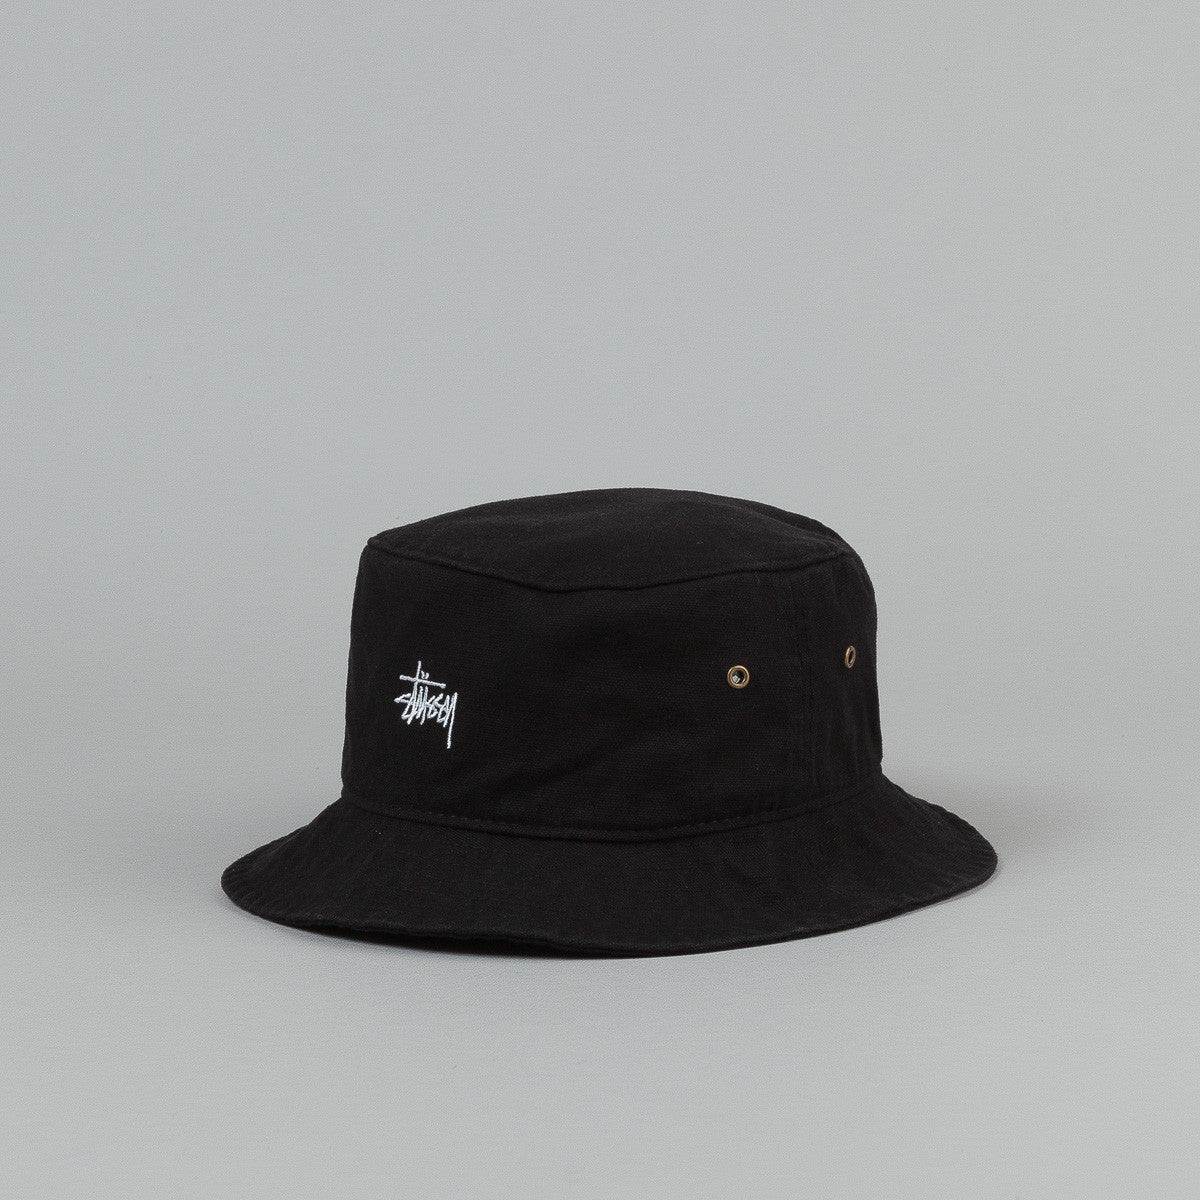 Stussy Smooth Crusher Bucket Hat